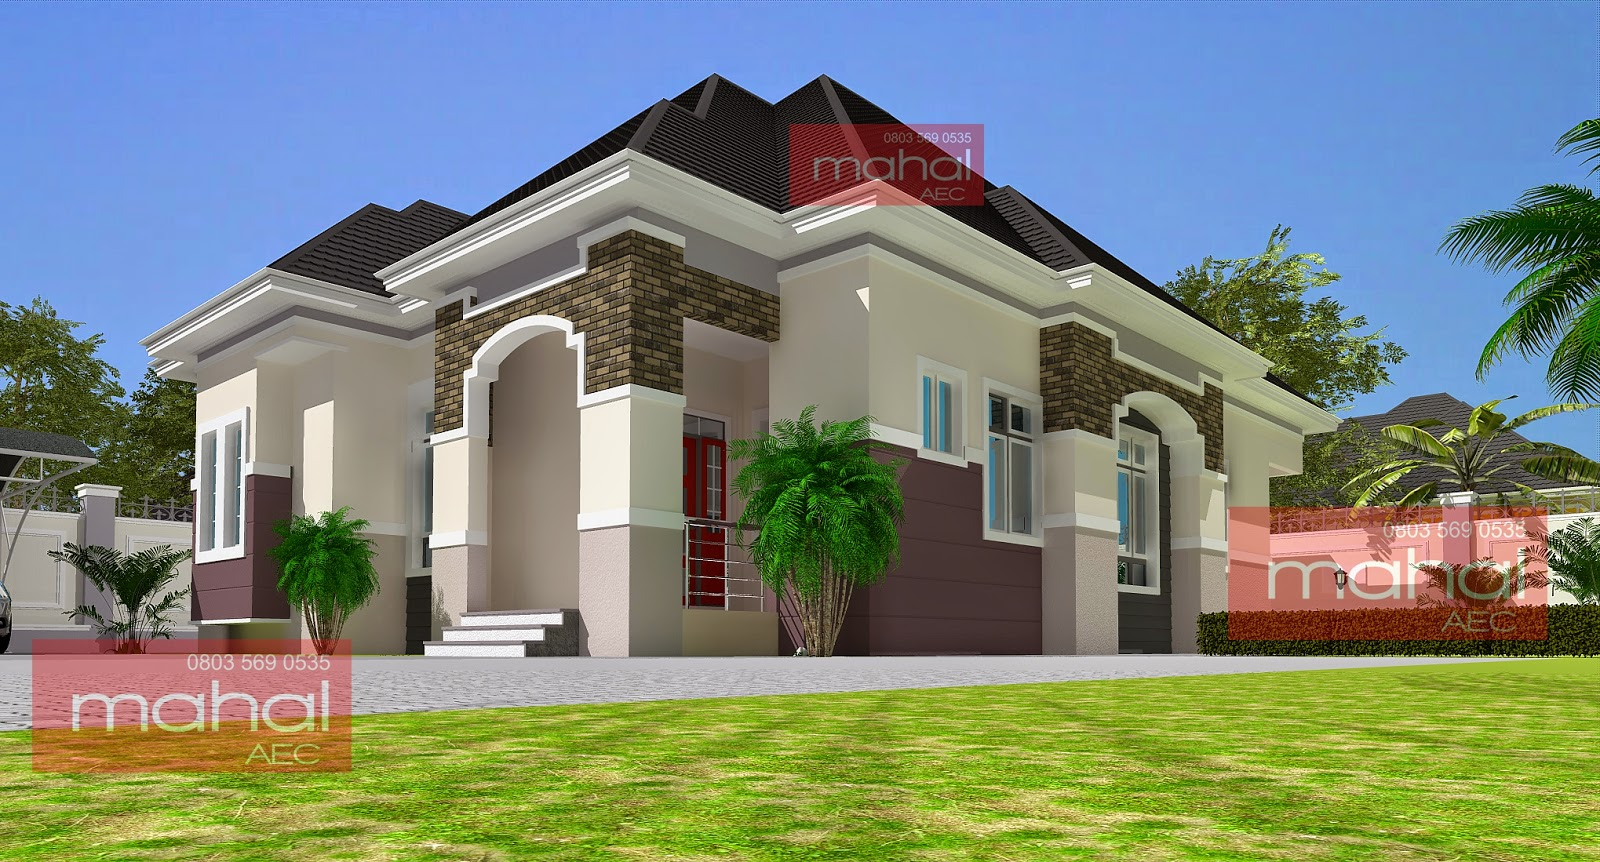 Contemporary nigerian residential architecture 3 bedroom for Architectural designs for 3 bedroom flat